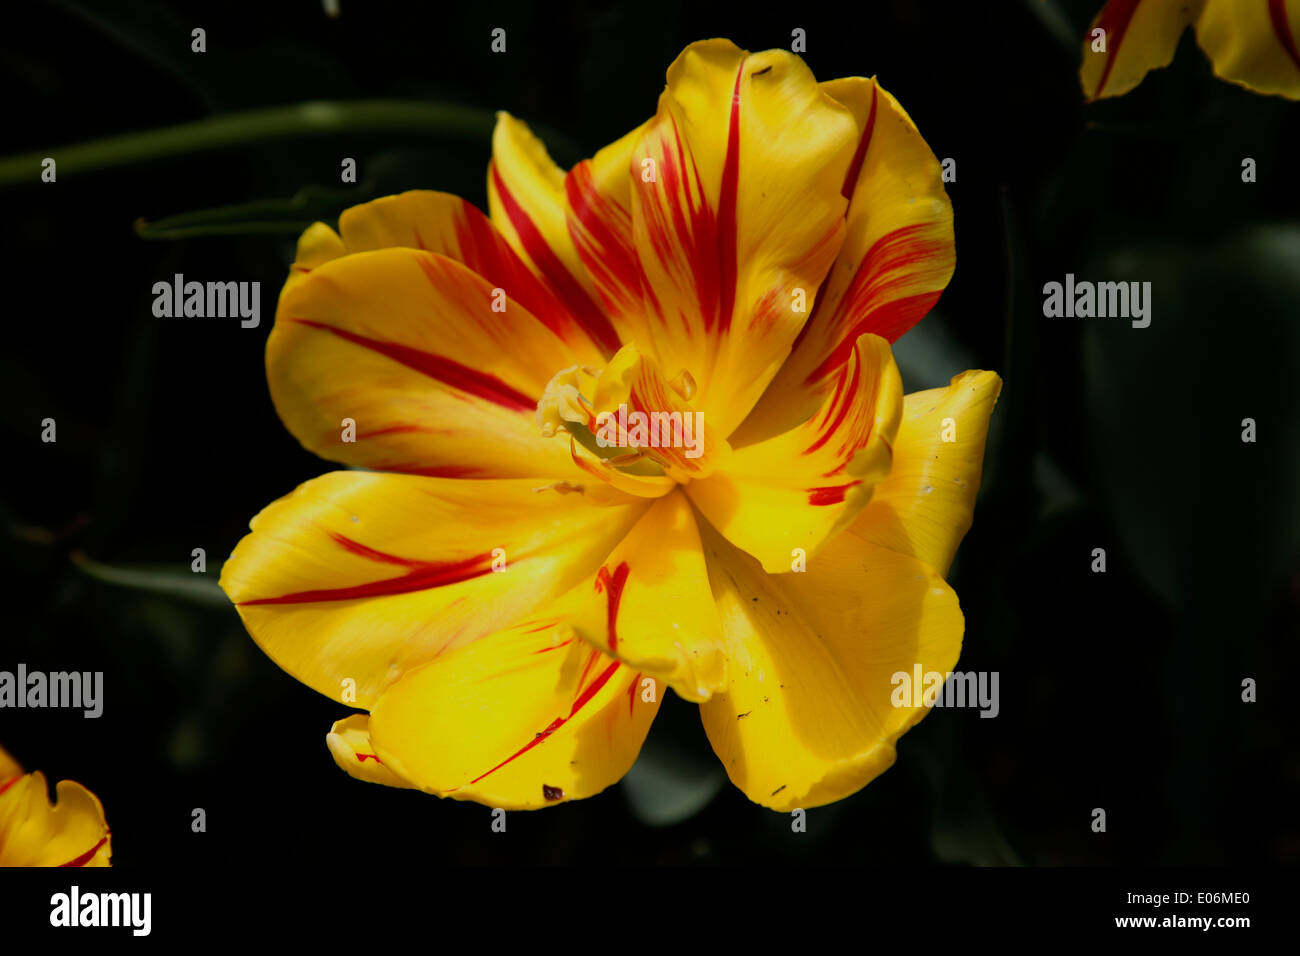 Full petaled canary yellow flowers with bright red flames certainly full petaled canary yellow flowers with bright red flames certainly make monsella eye catching and lightly fragrant too mightylinksfo